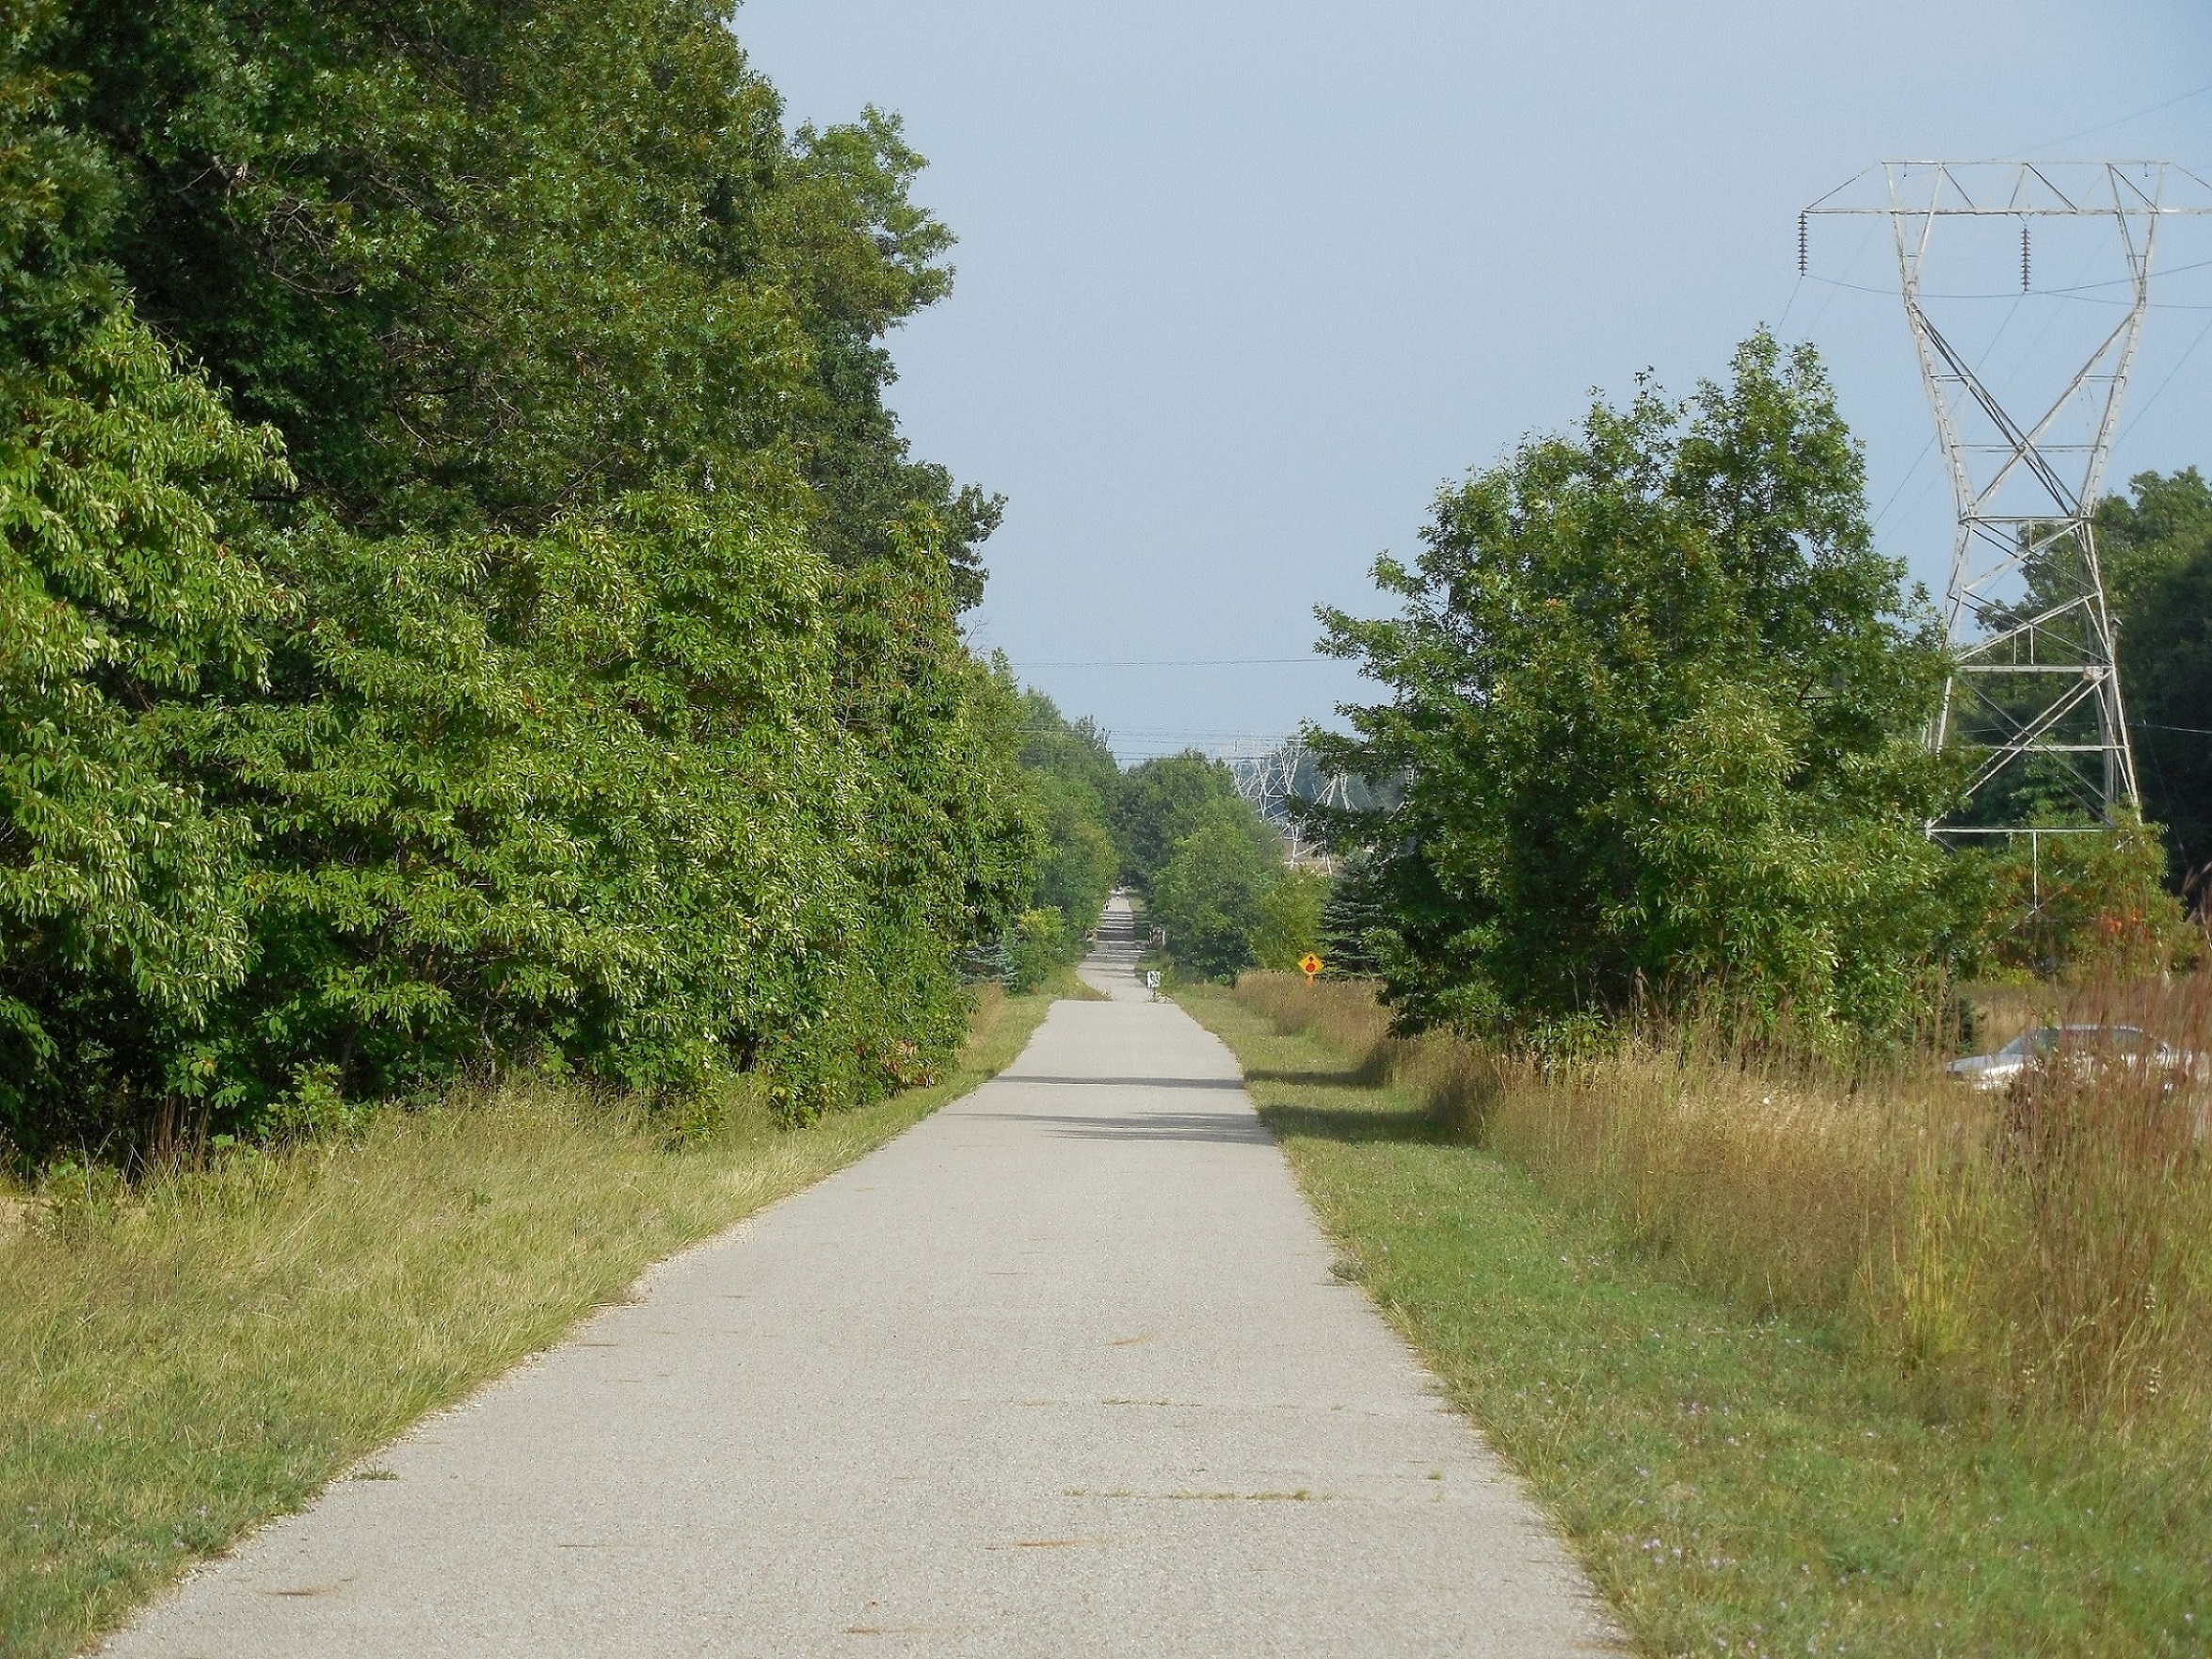 5. Muskegon Trail Head Looking East Along the Trail